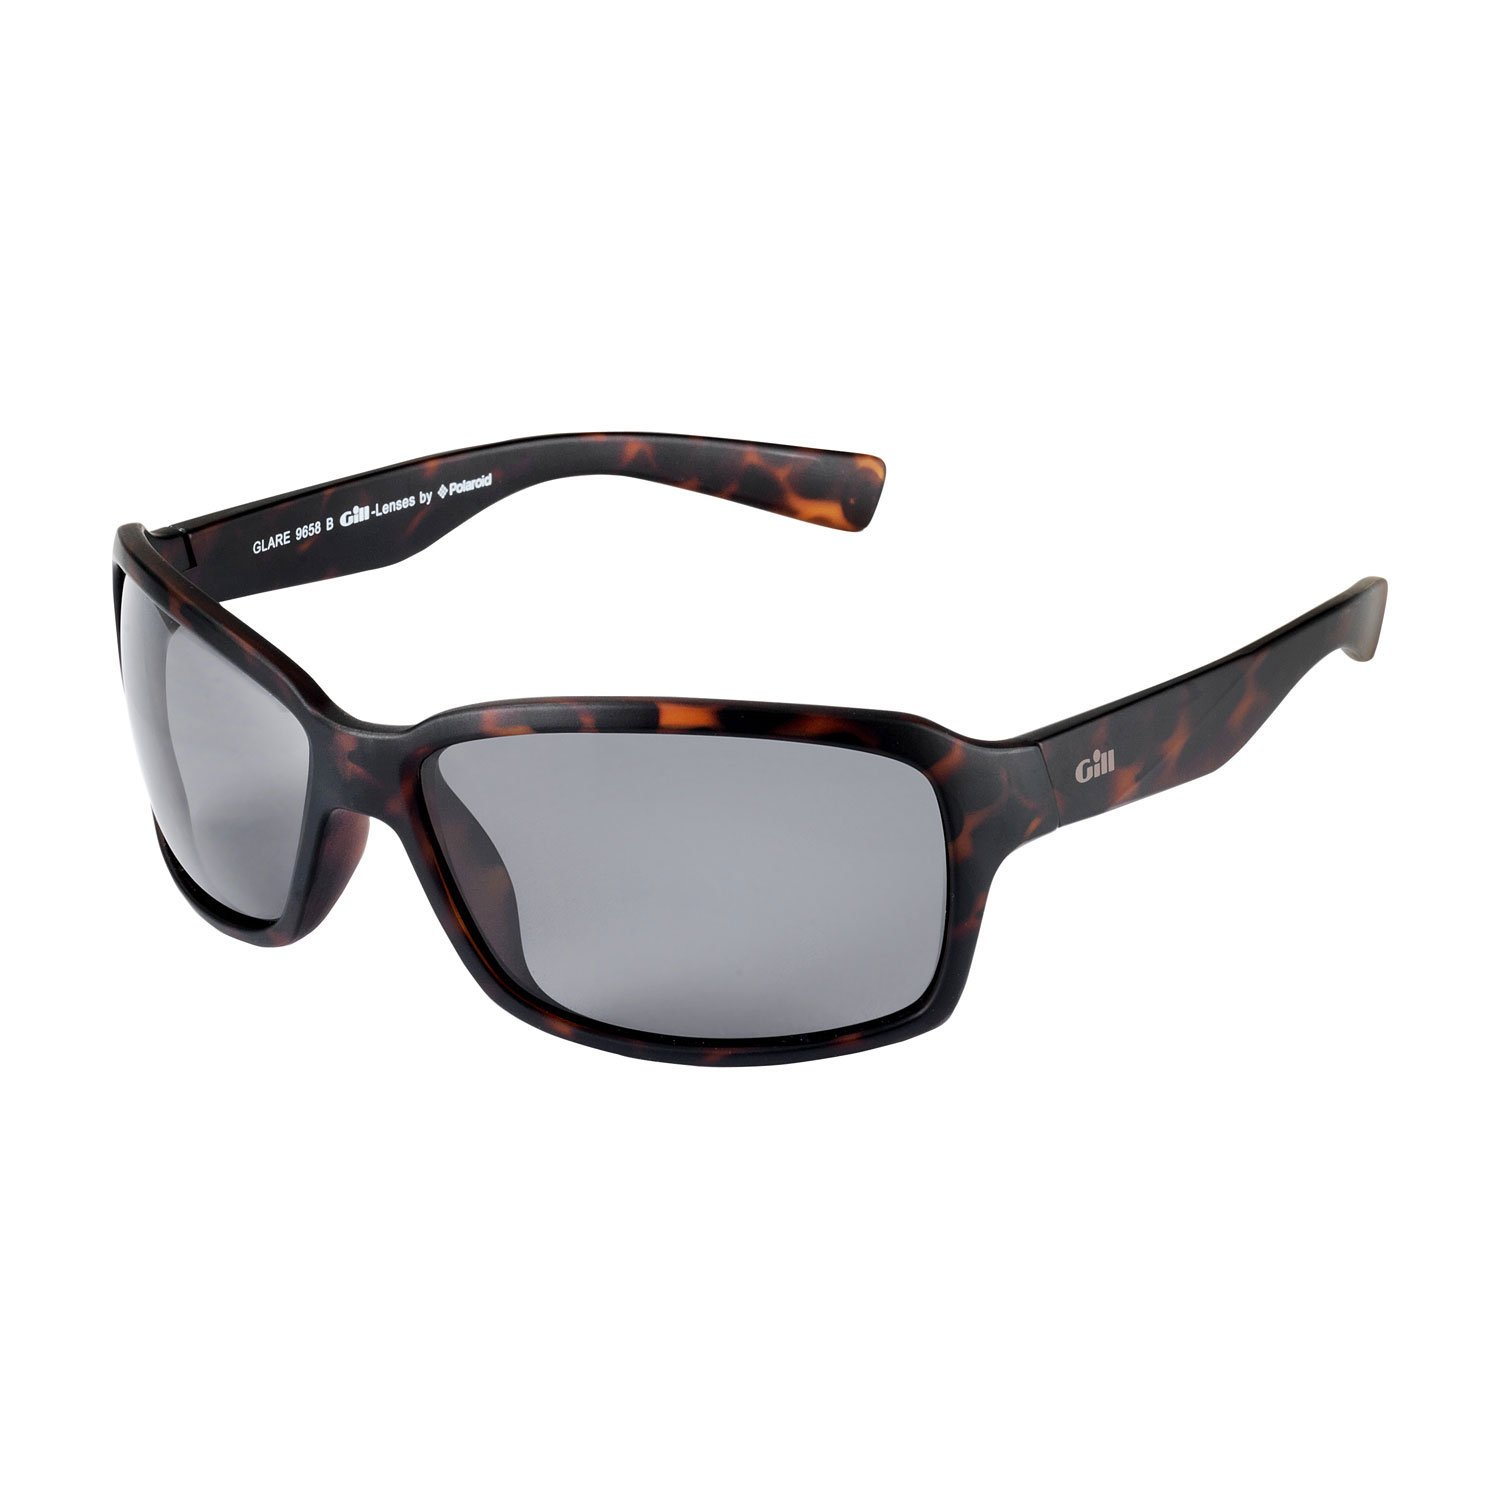 24afe6b7b600 Gill Glare Floating Sunglasses Tortoise - Unisex - Polarized lens  technology.: Amazon.co.uk: Sports & Outdoors